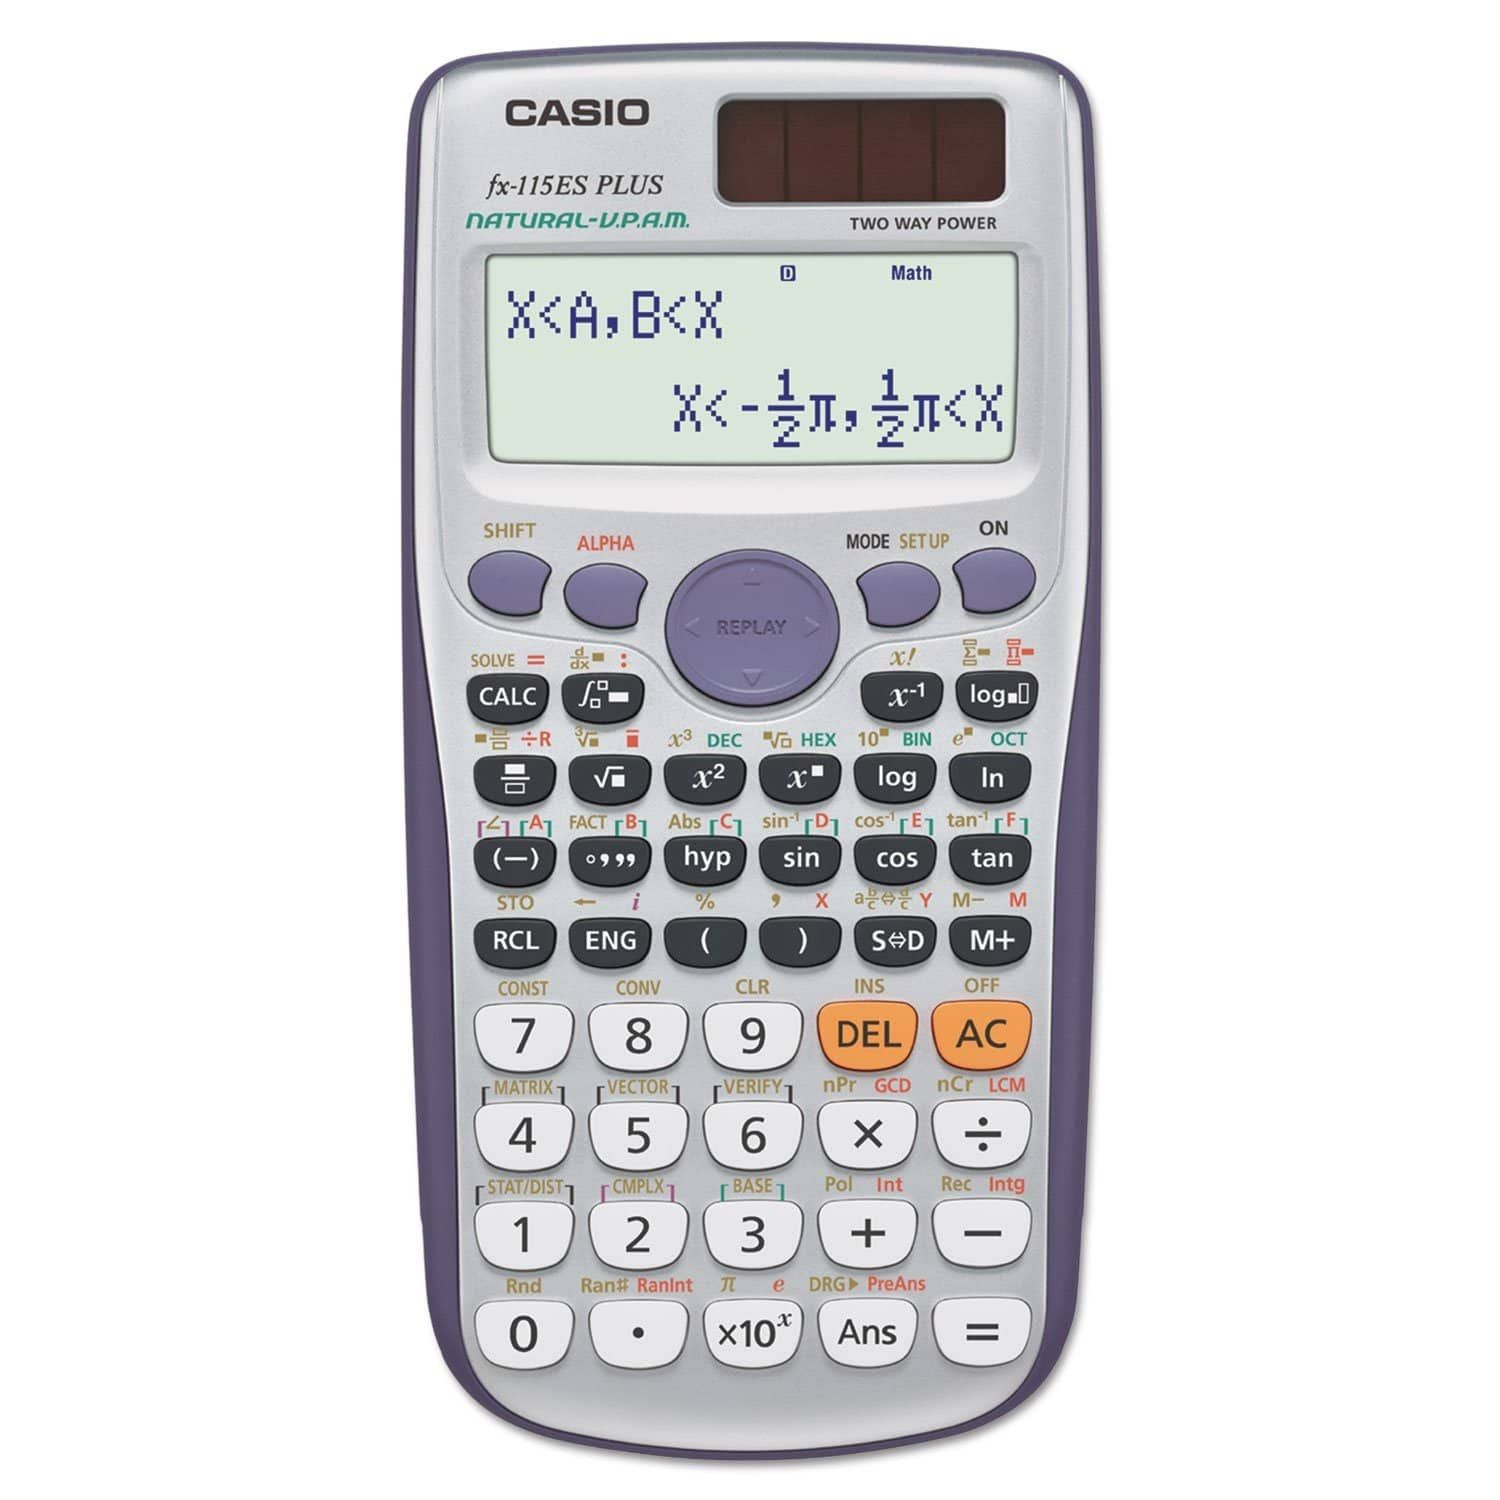 Top 7 Best Casio Scientific Calculators In 2020 Hqreview Scientific Calculators Graphing Calculator Calculator